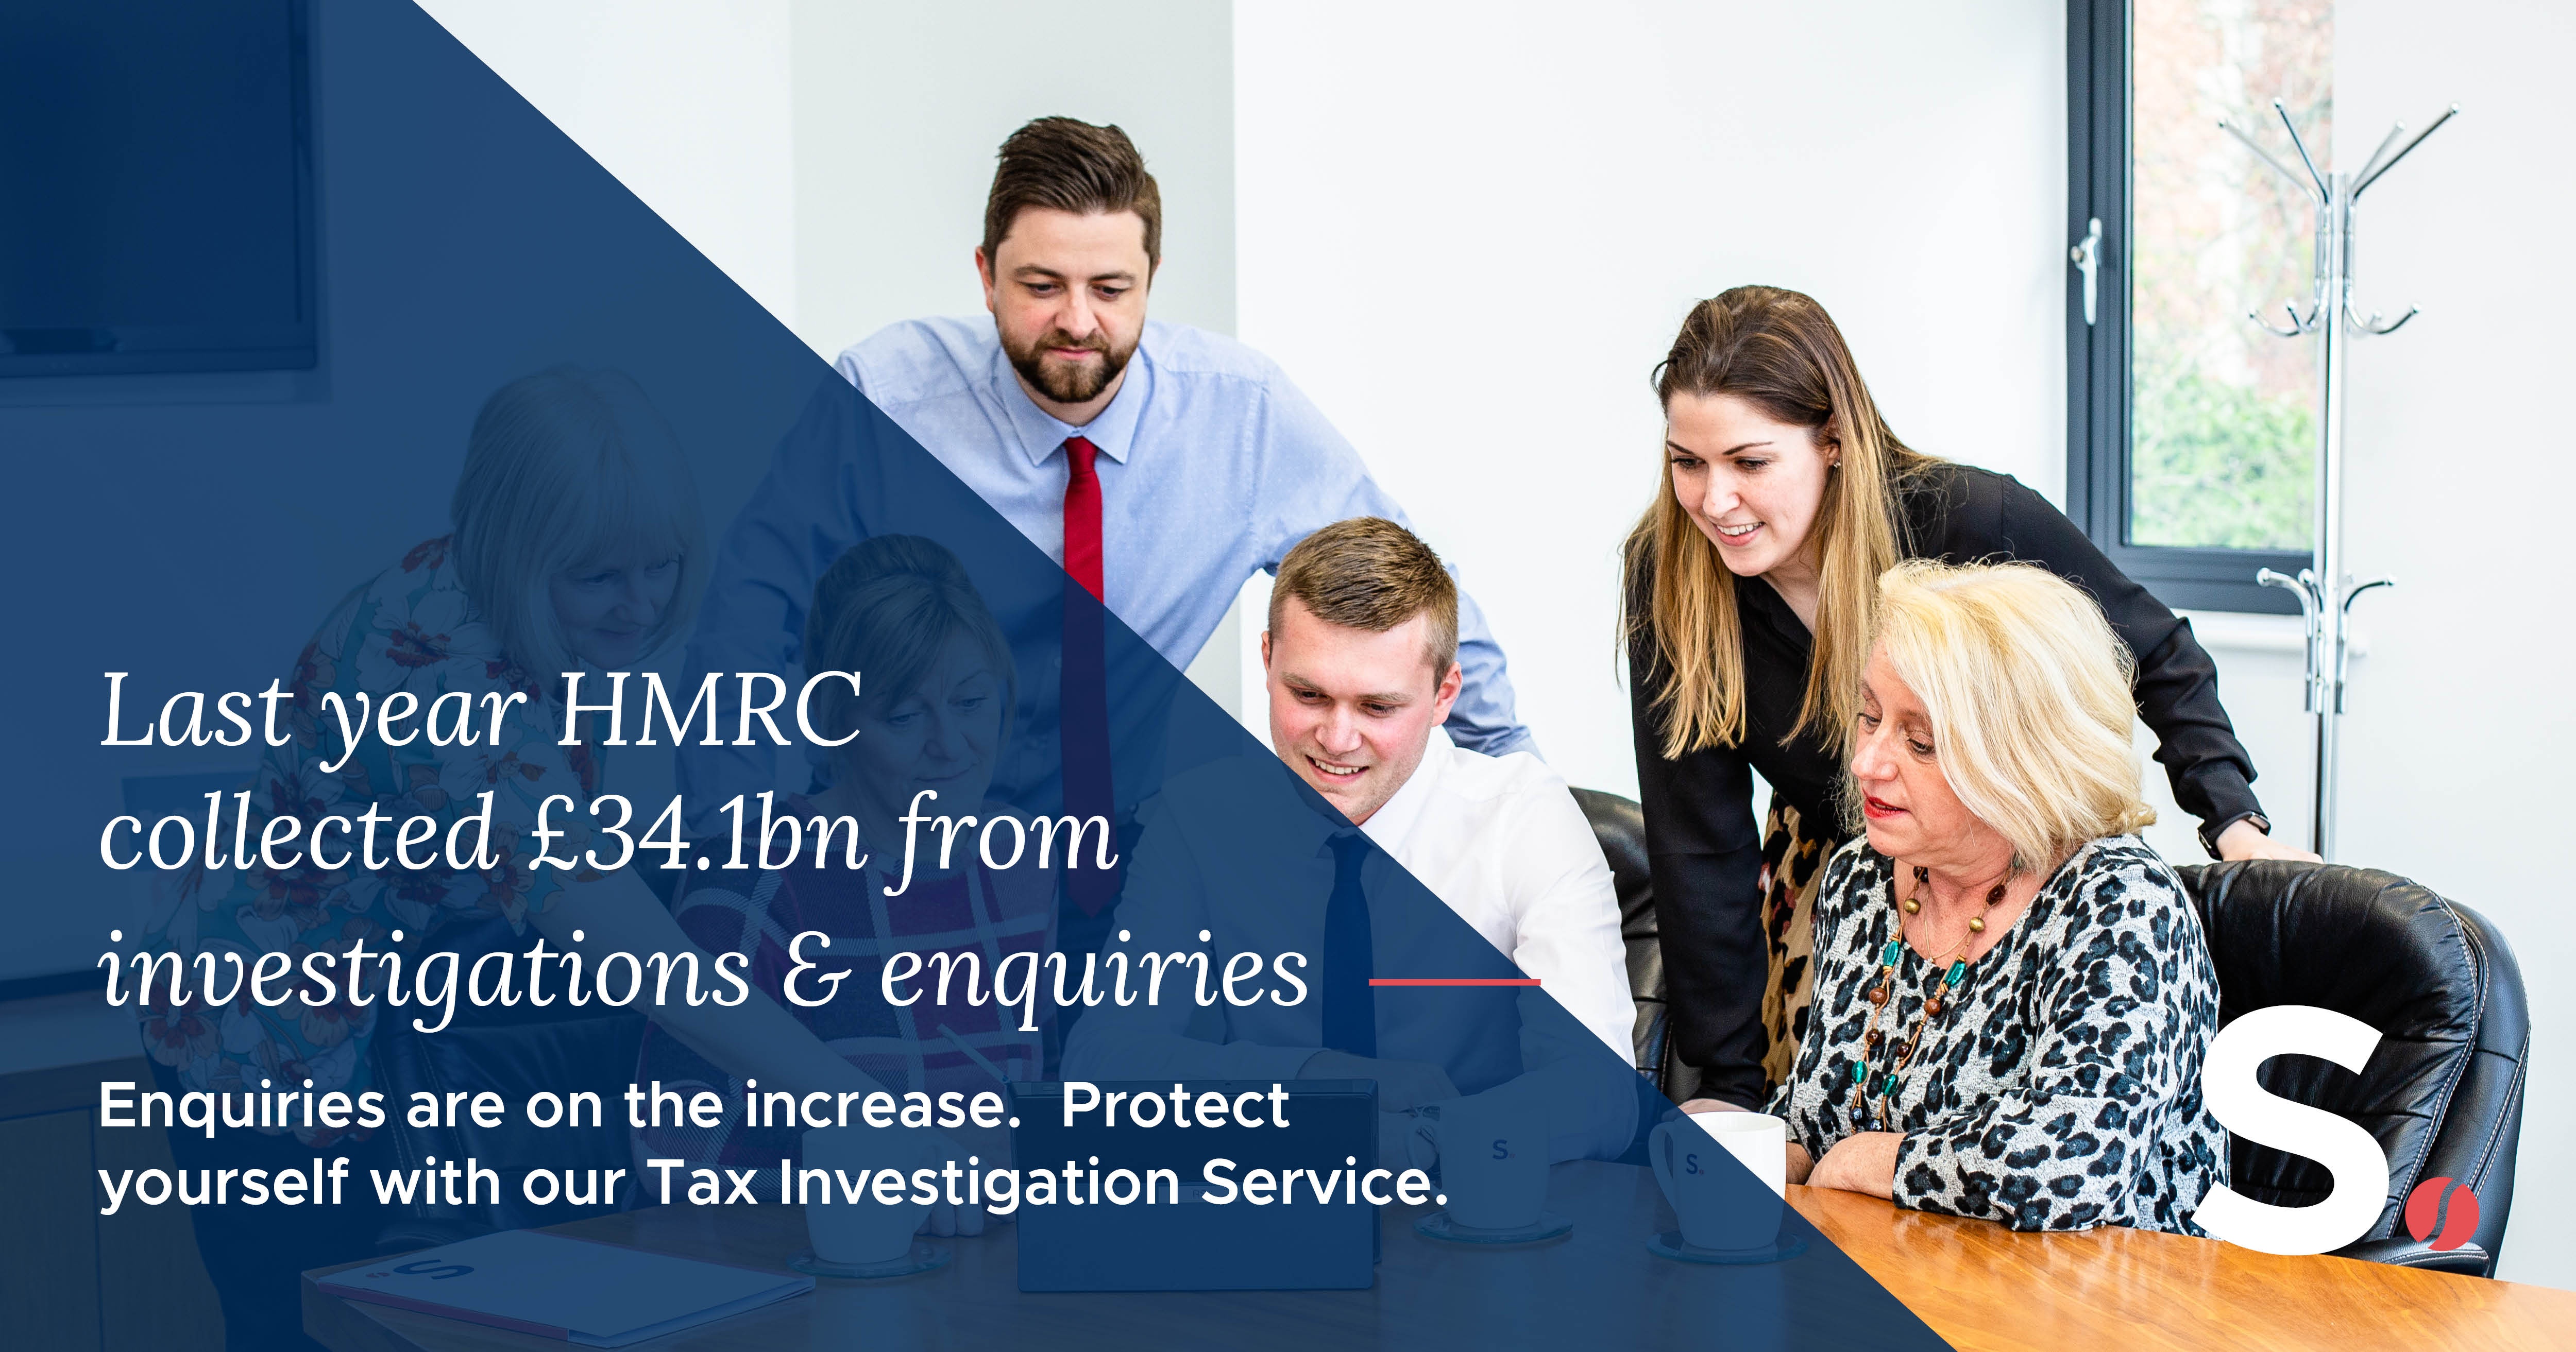 Protect yourself / business against HMRC tax enquiries